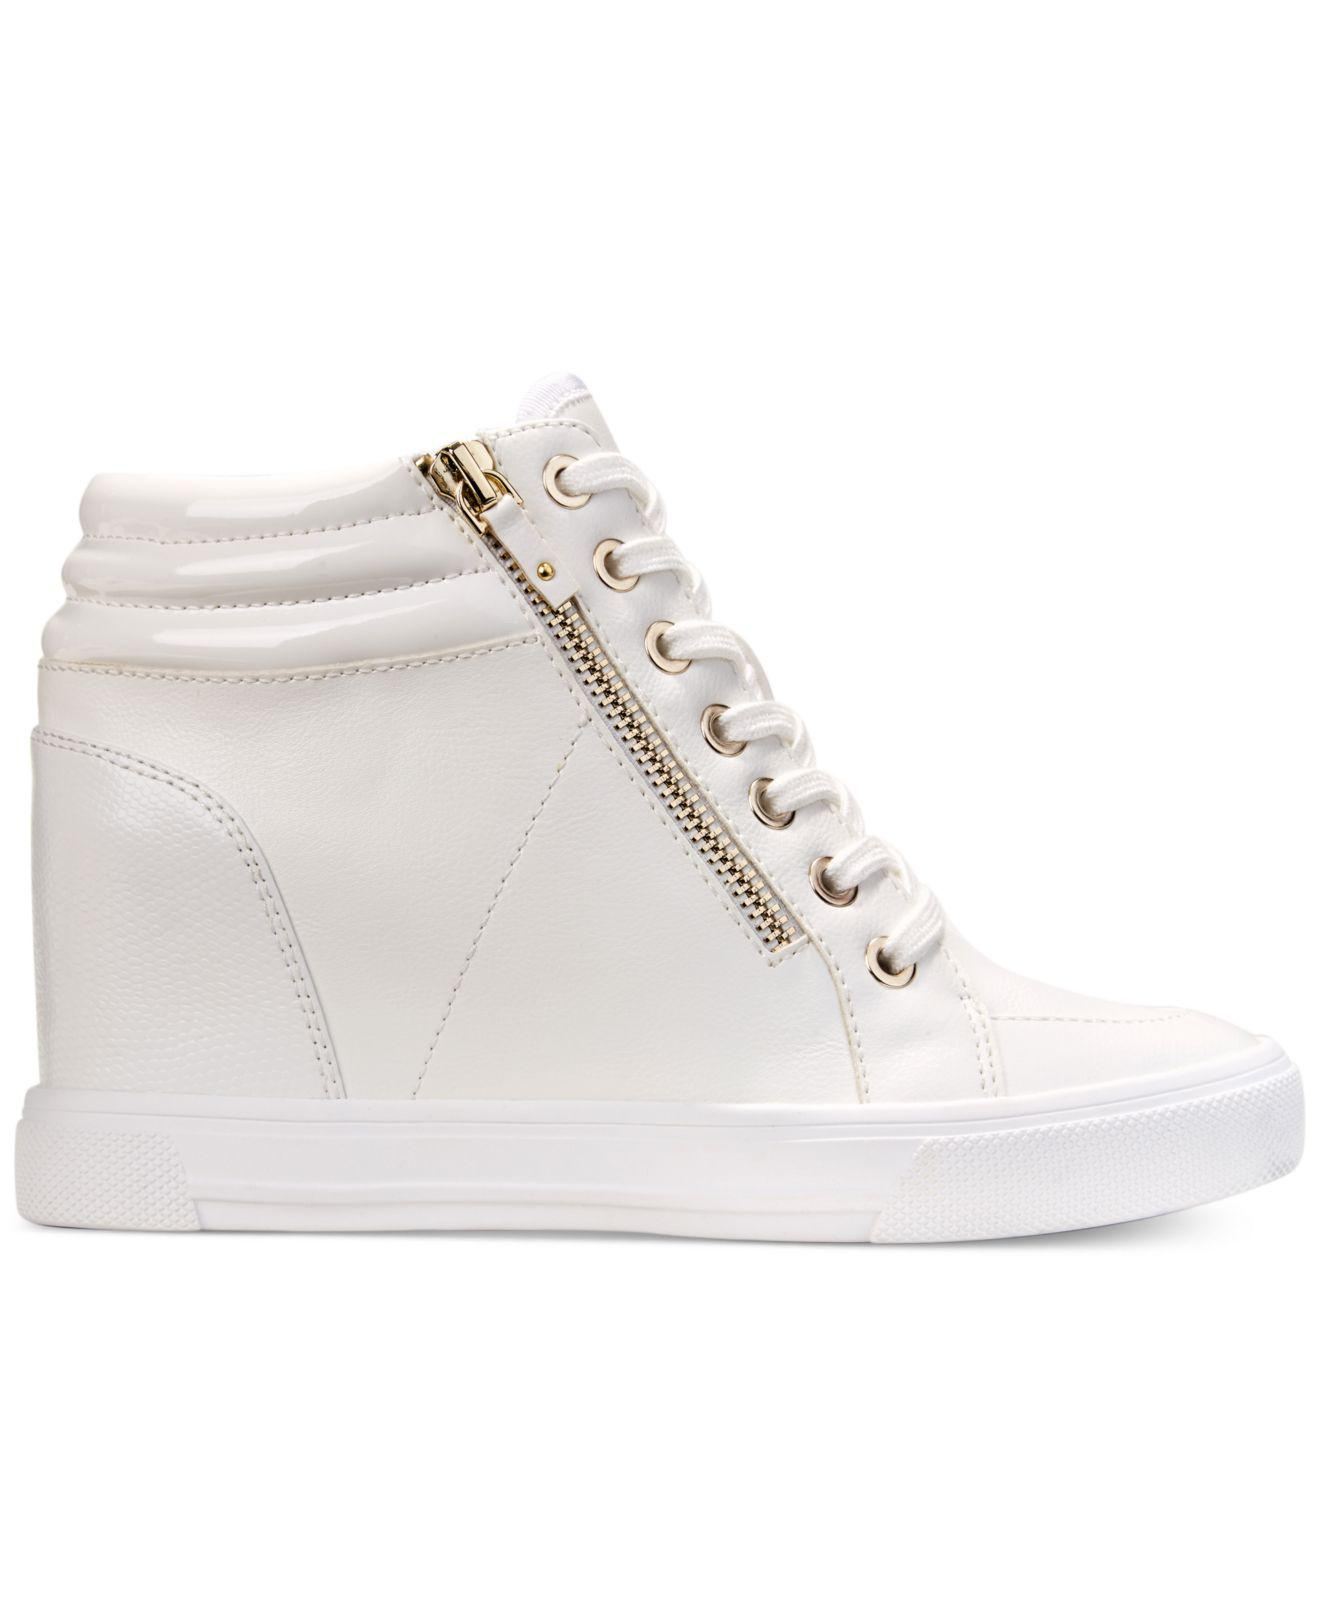 39dd70f5be73 Lyst - ALDO Kaia Lace-up Wedge Sneakers in White